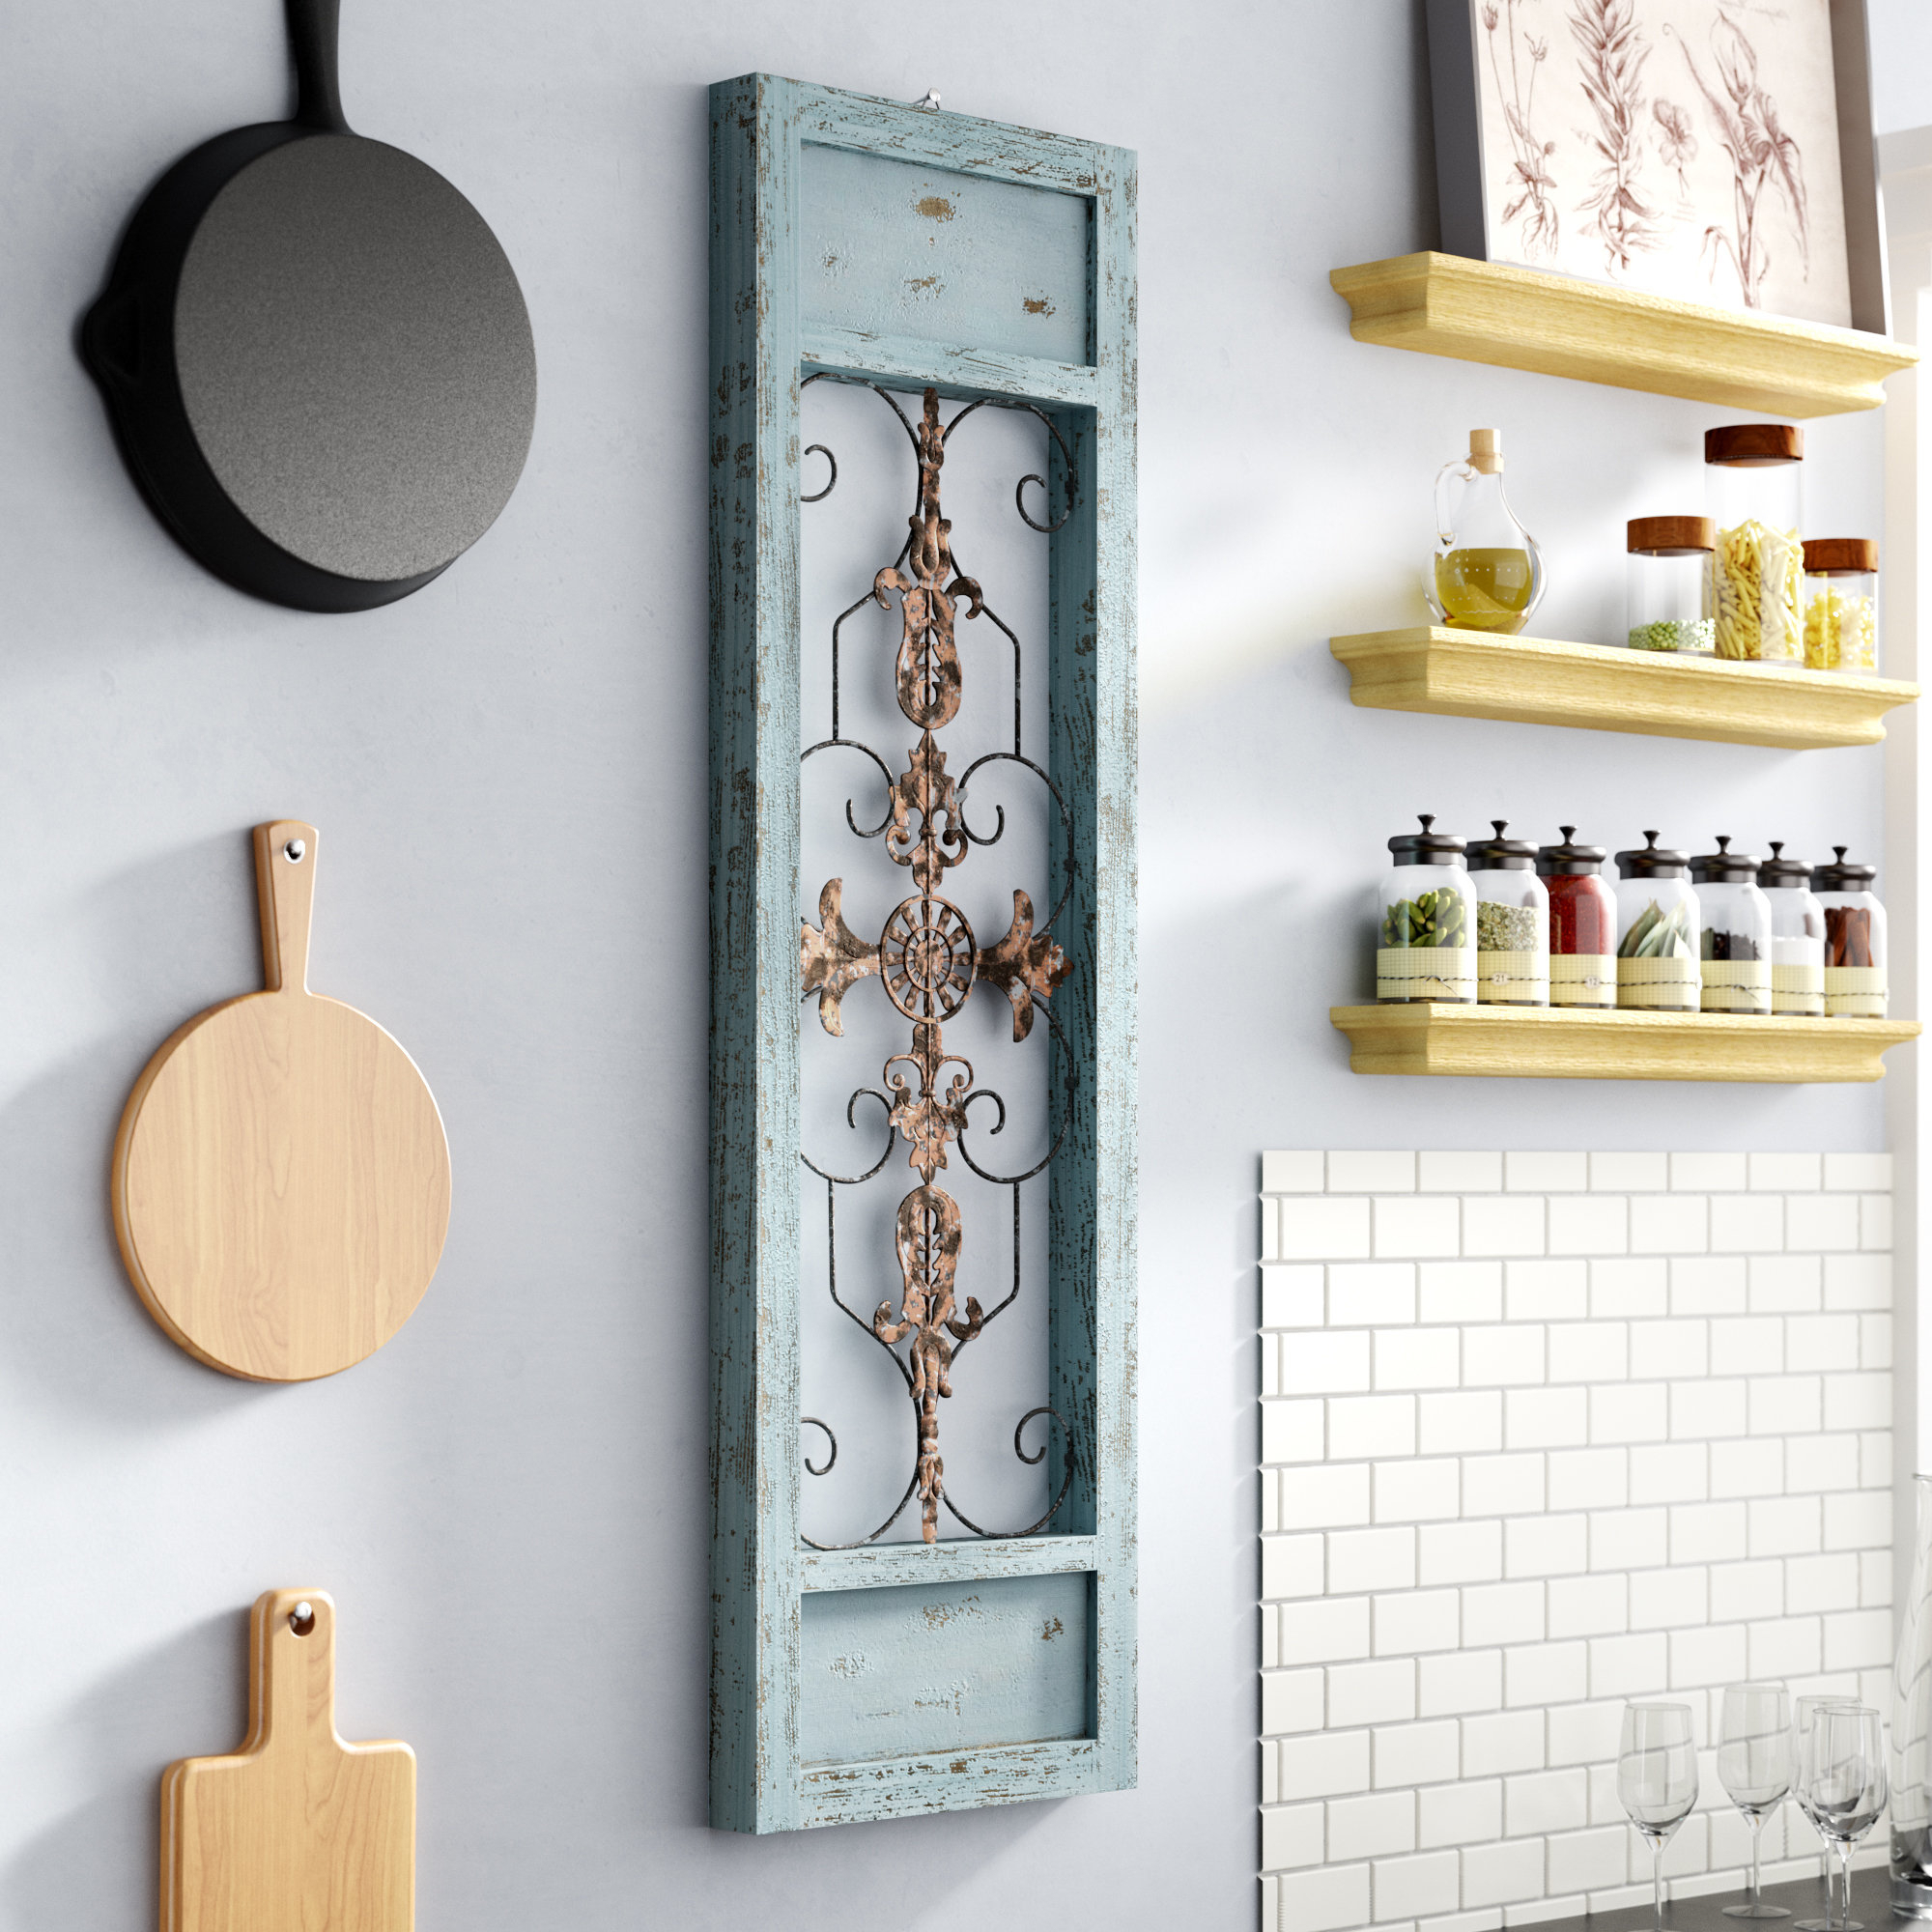 Wall Flower Decor | Wayfair In Farm Metal Wall Rack And 3 Tin Pot With Hanger Wall Decor (View 8 of 30)